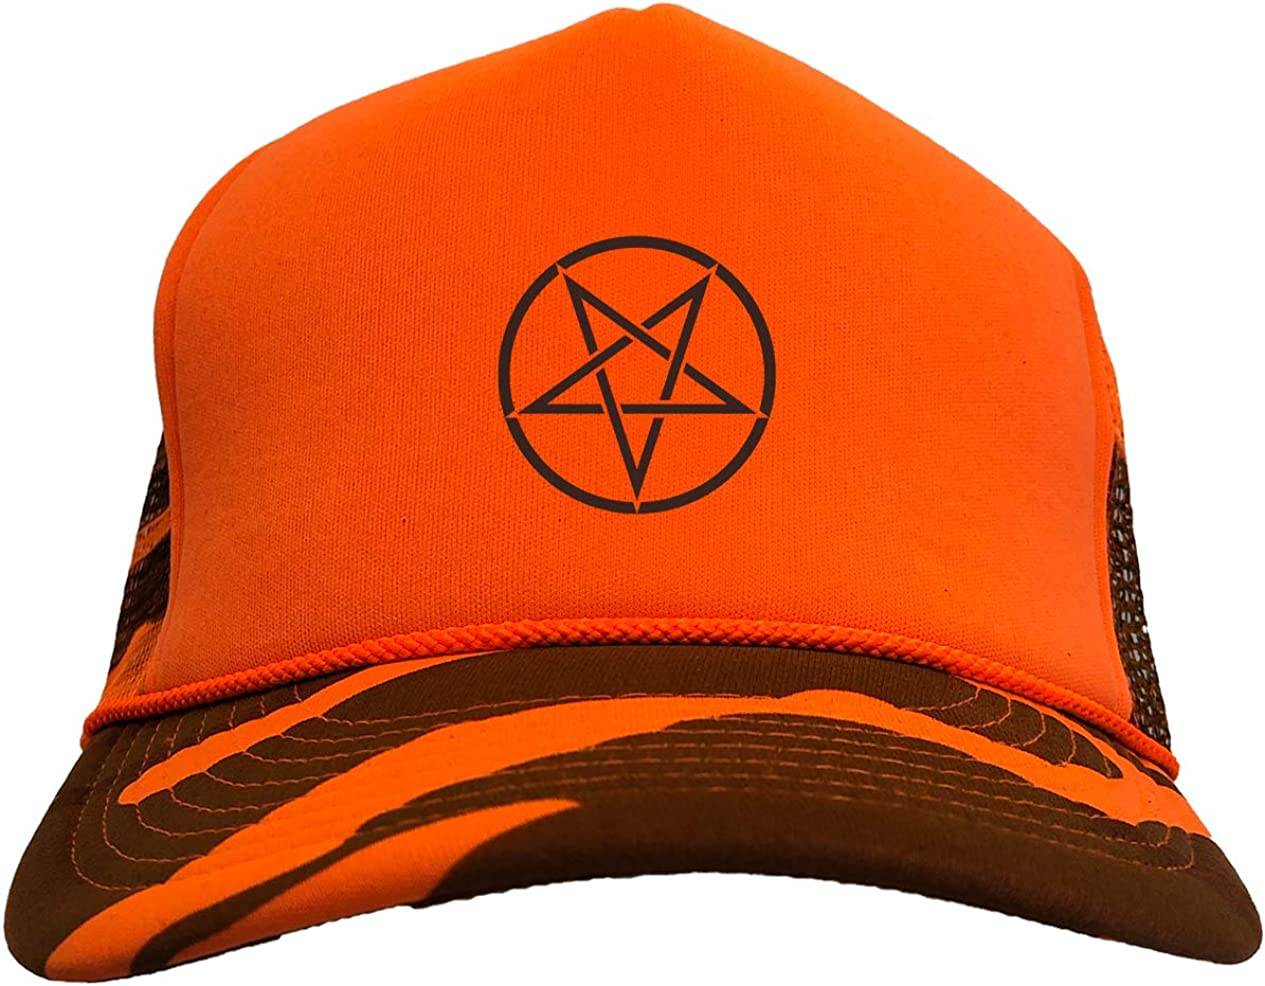 Manufacturer direct delivery Tcombo Pentagram - Satanic Antichrist Camoflauge Hat Trucker Courier shipping free shipping